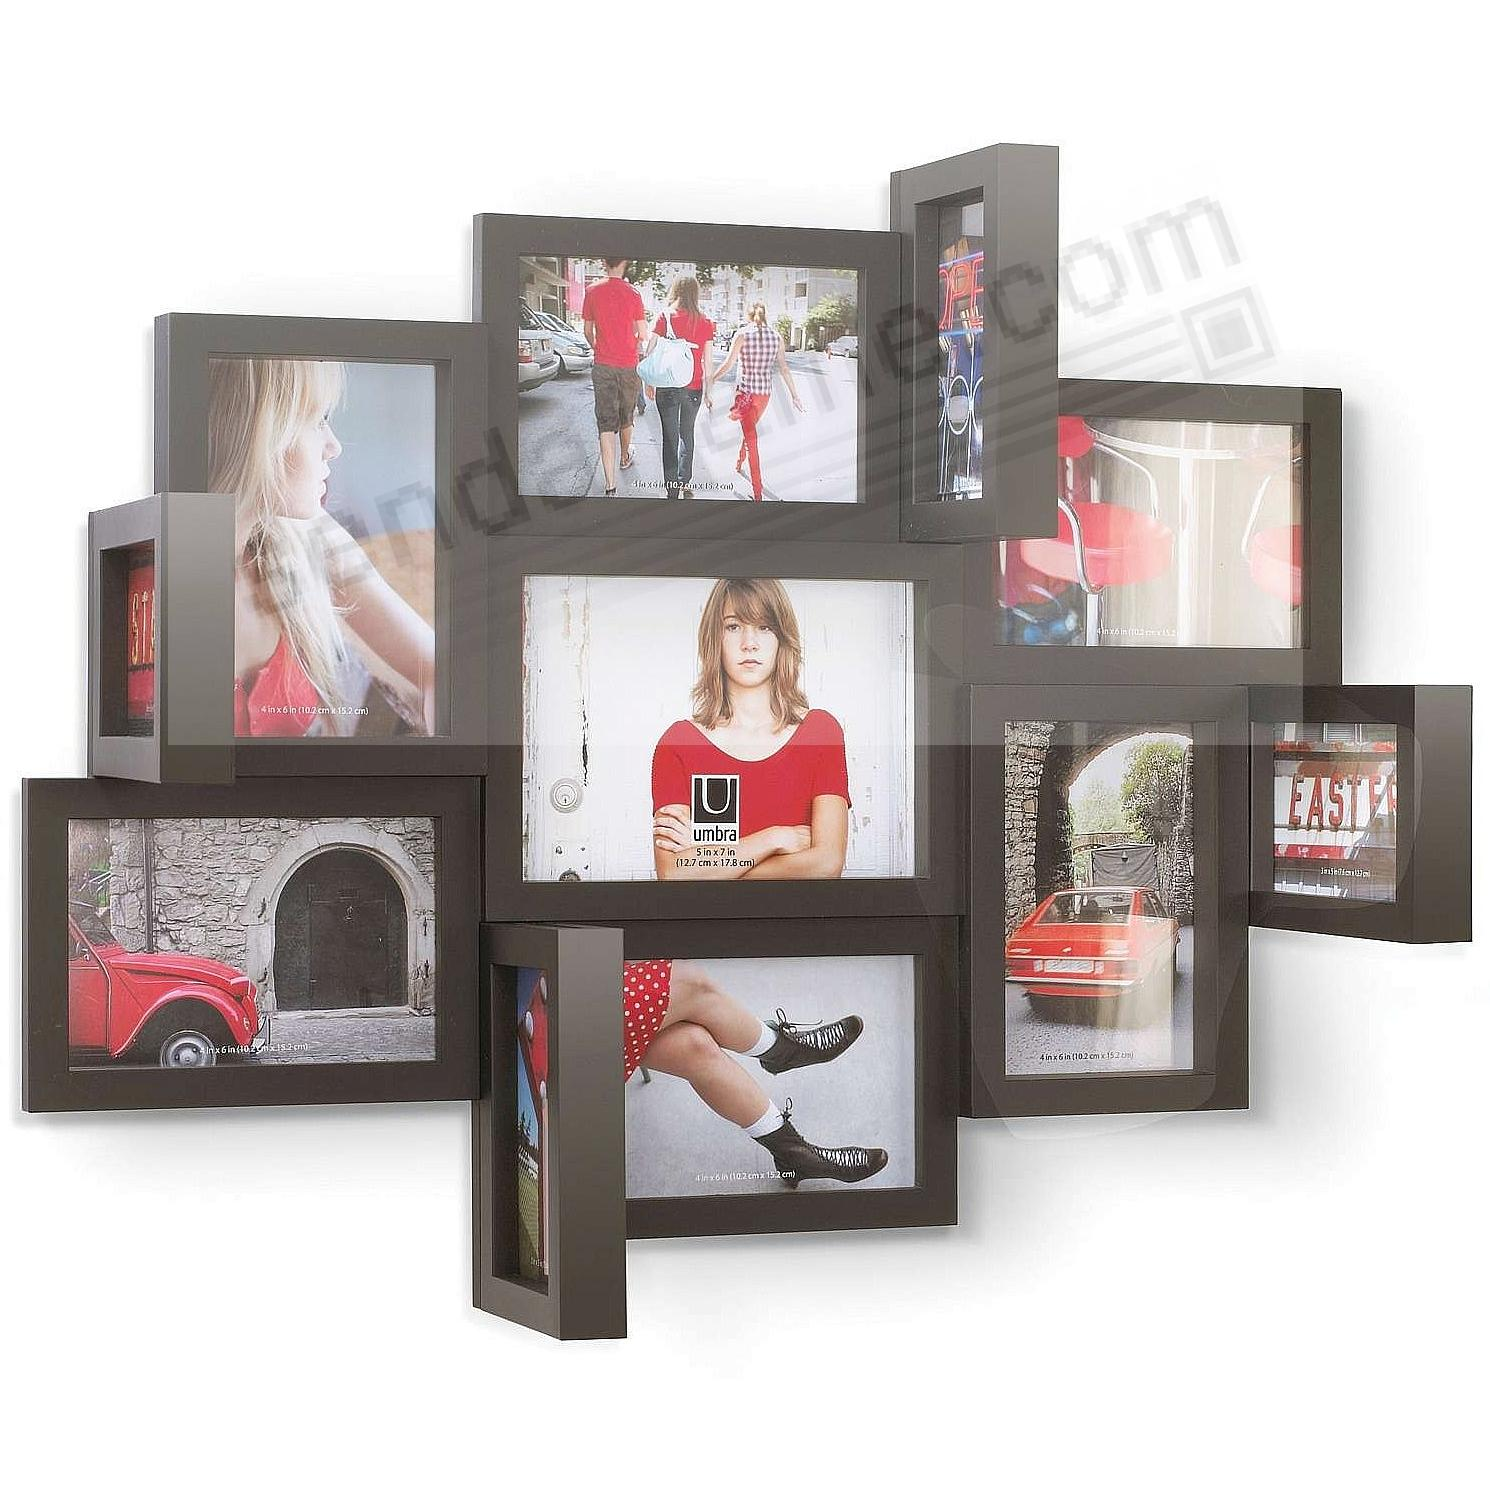 The original perspective black multiframe wall sculpture shows 15 the original perspective black multiframe wall sculpture shows 15 photos by umbra jeuxipadfo Images